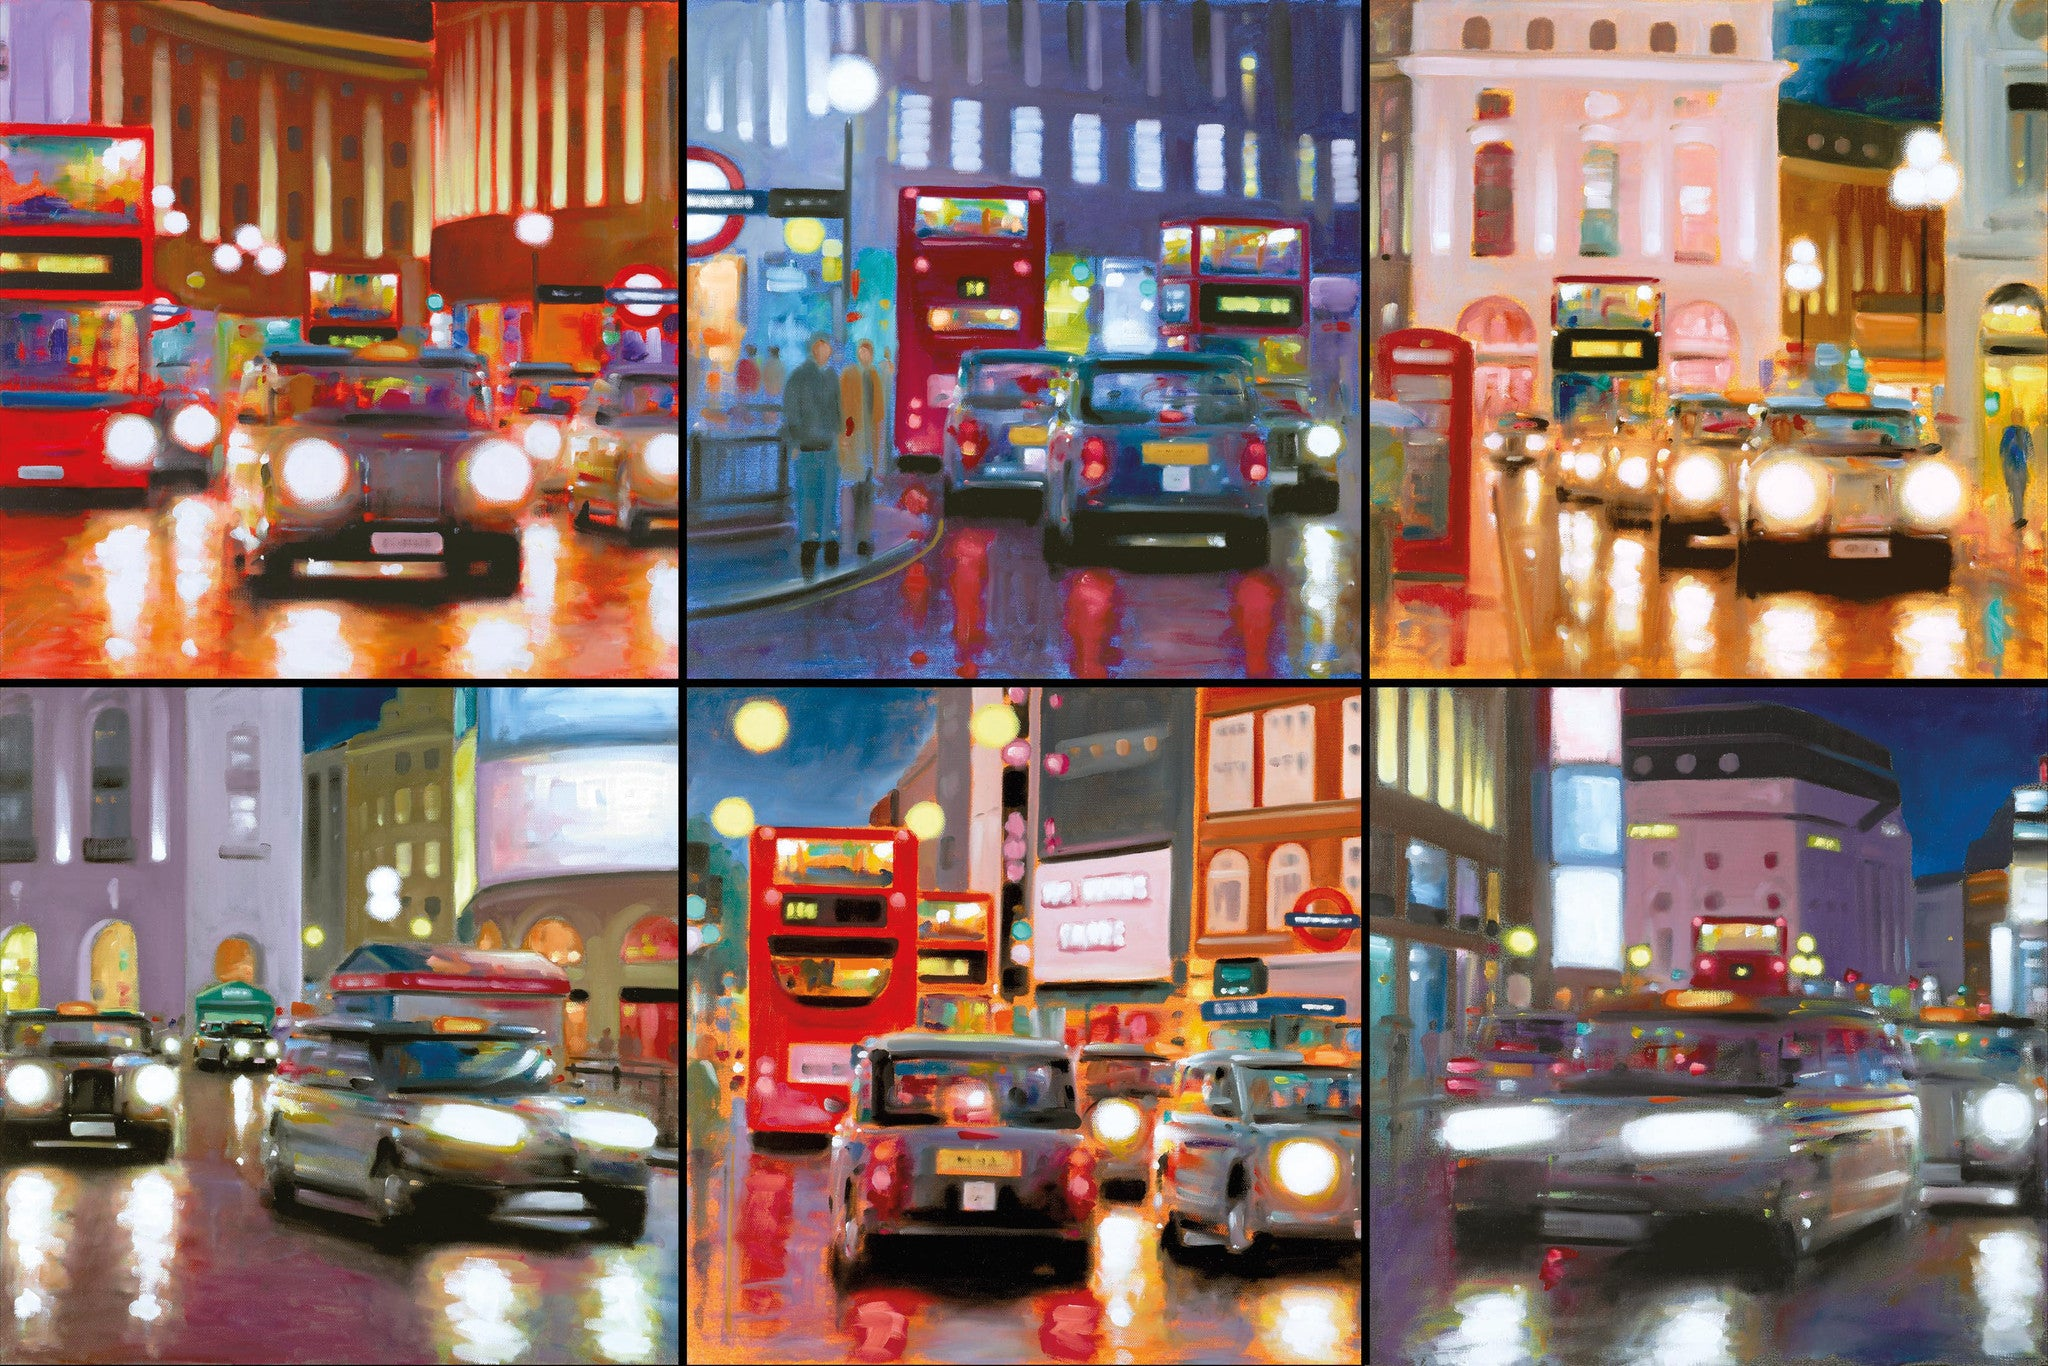 Night Time In The City - 2015 - Neil Dawson - Antidote Art